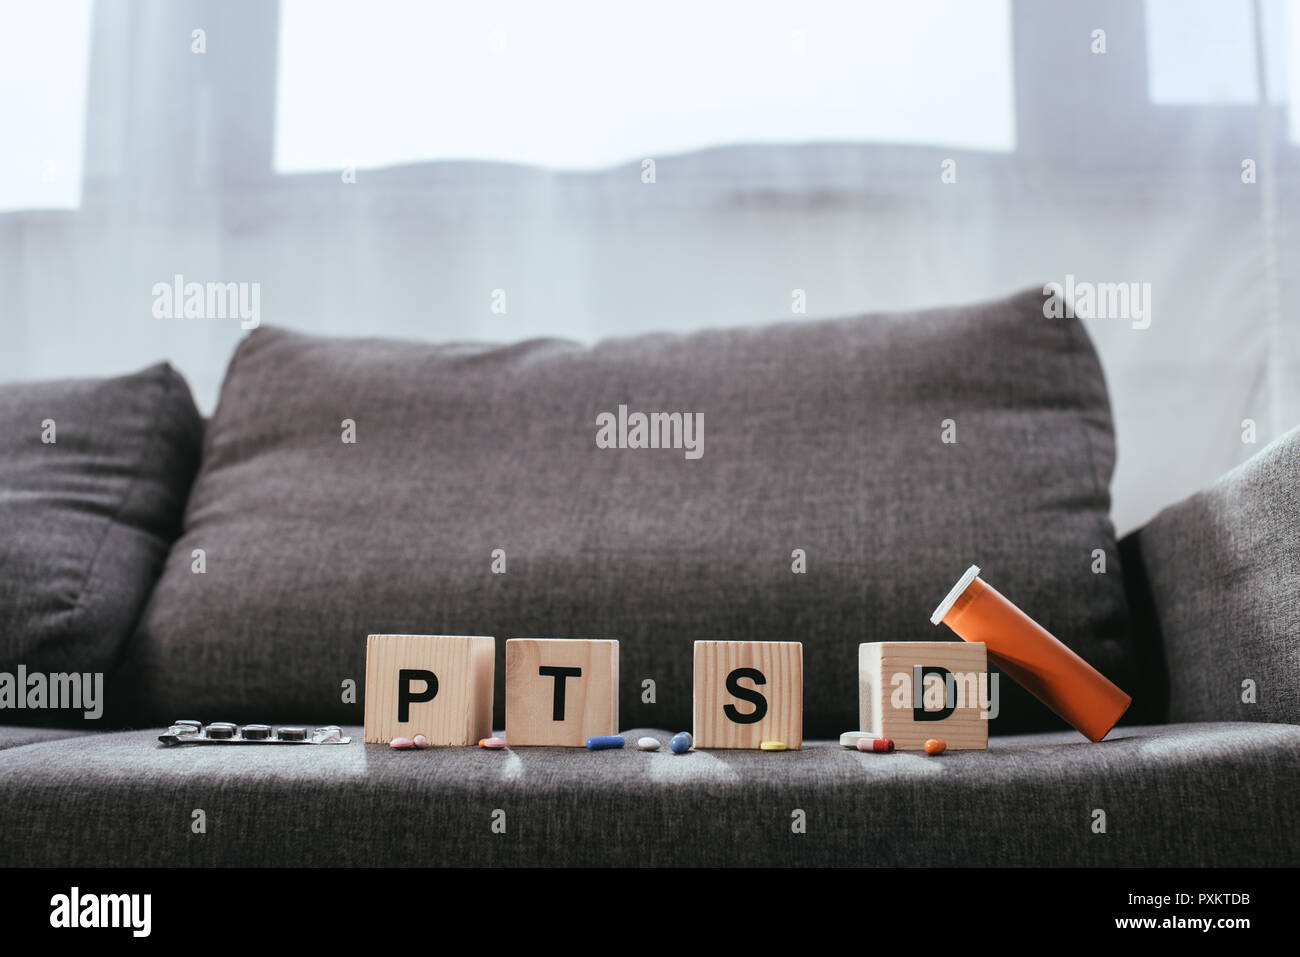 wooden cubes with posttraumatic stress disorder abbreviation signs (PTSD) lying on couch with various pills Stock Photo